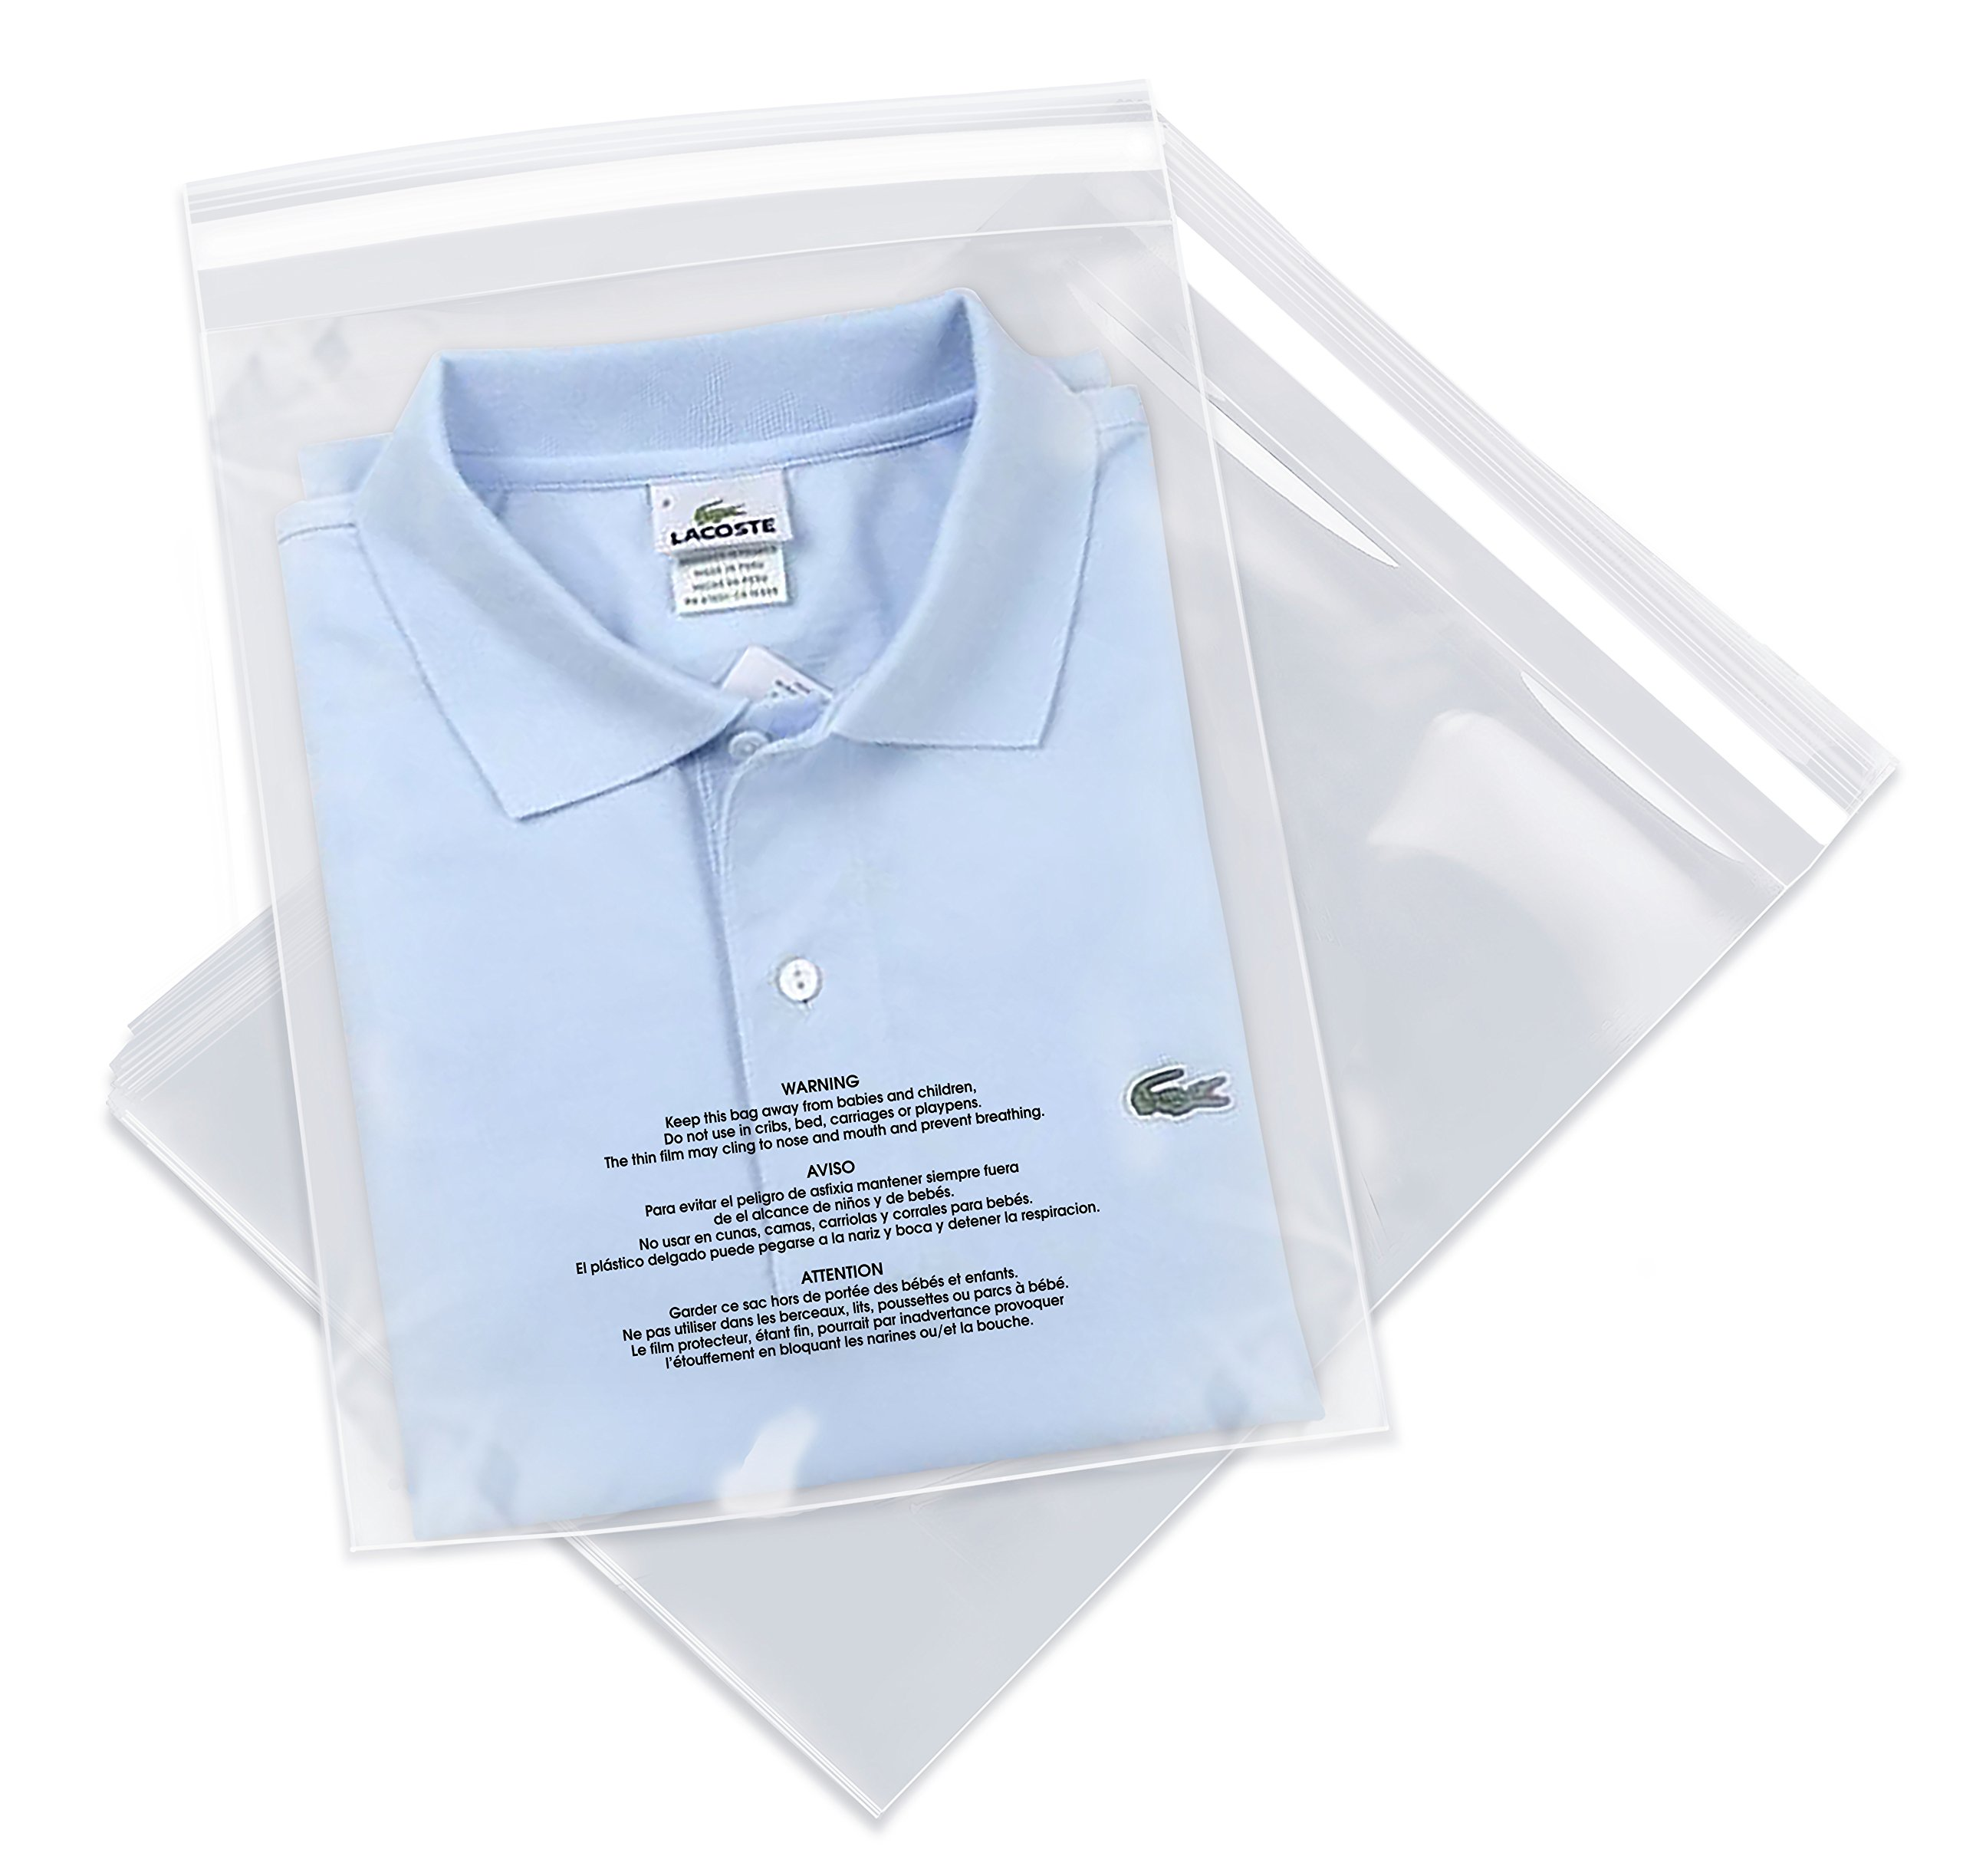 100 Count - 11'' X 14'' Self Seal 1.5 Mil Clear Poly Bags with Suffocation Warning, Permanent Adhesive & Premium Durability (Other Sizes Available)